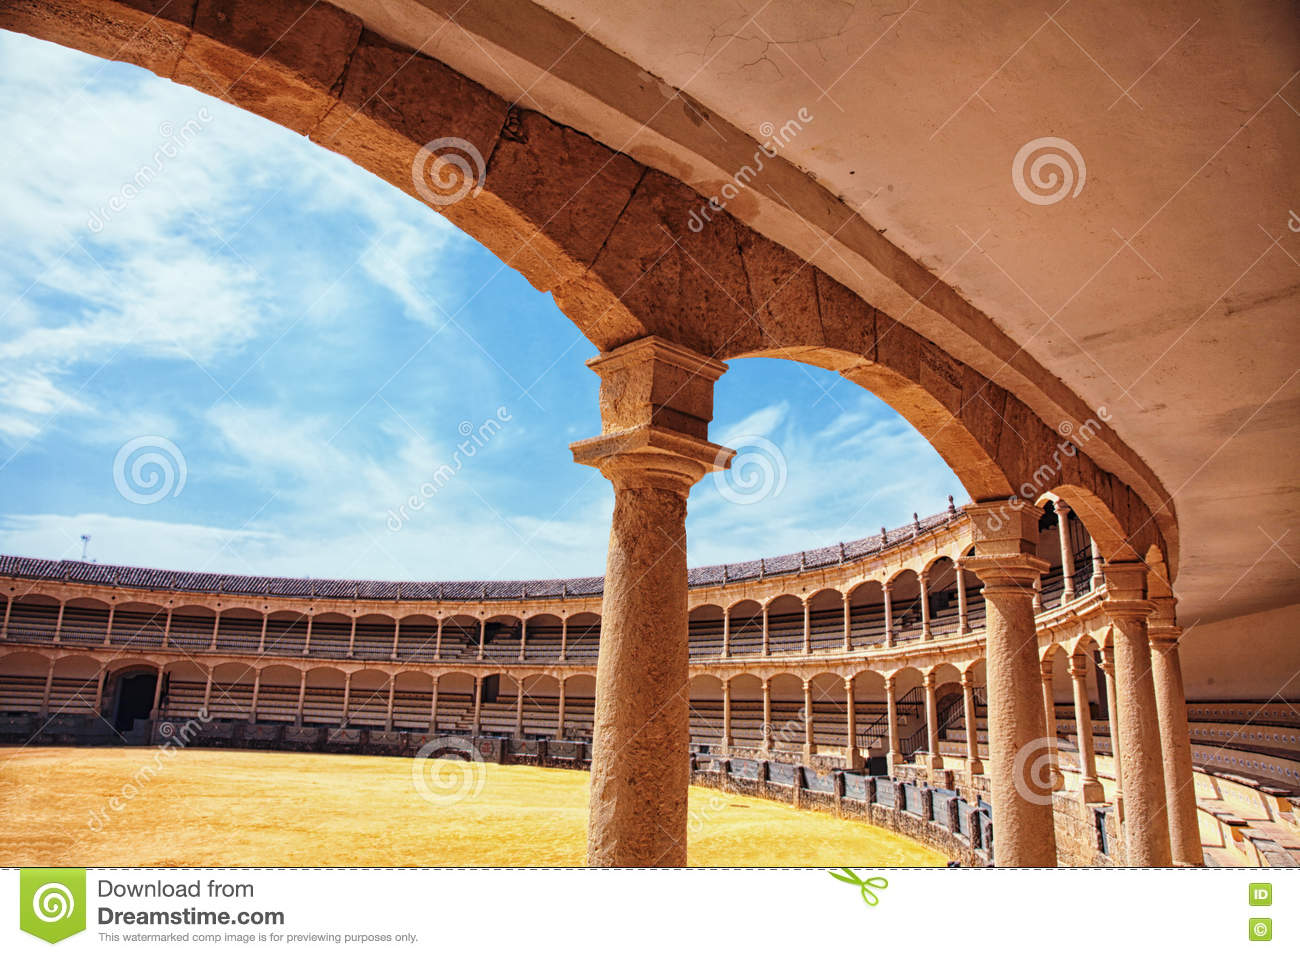 Ronda, Spain Stock Photo - Image: 26053850